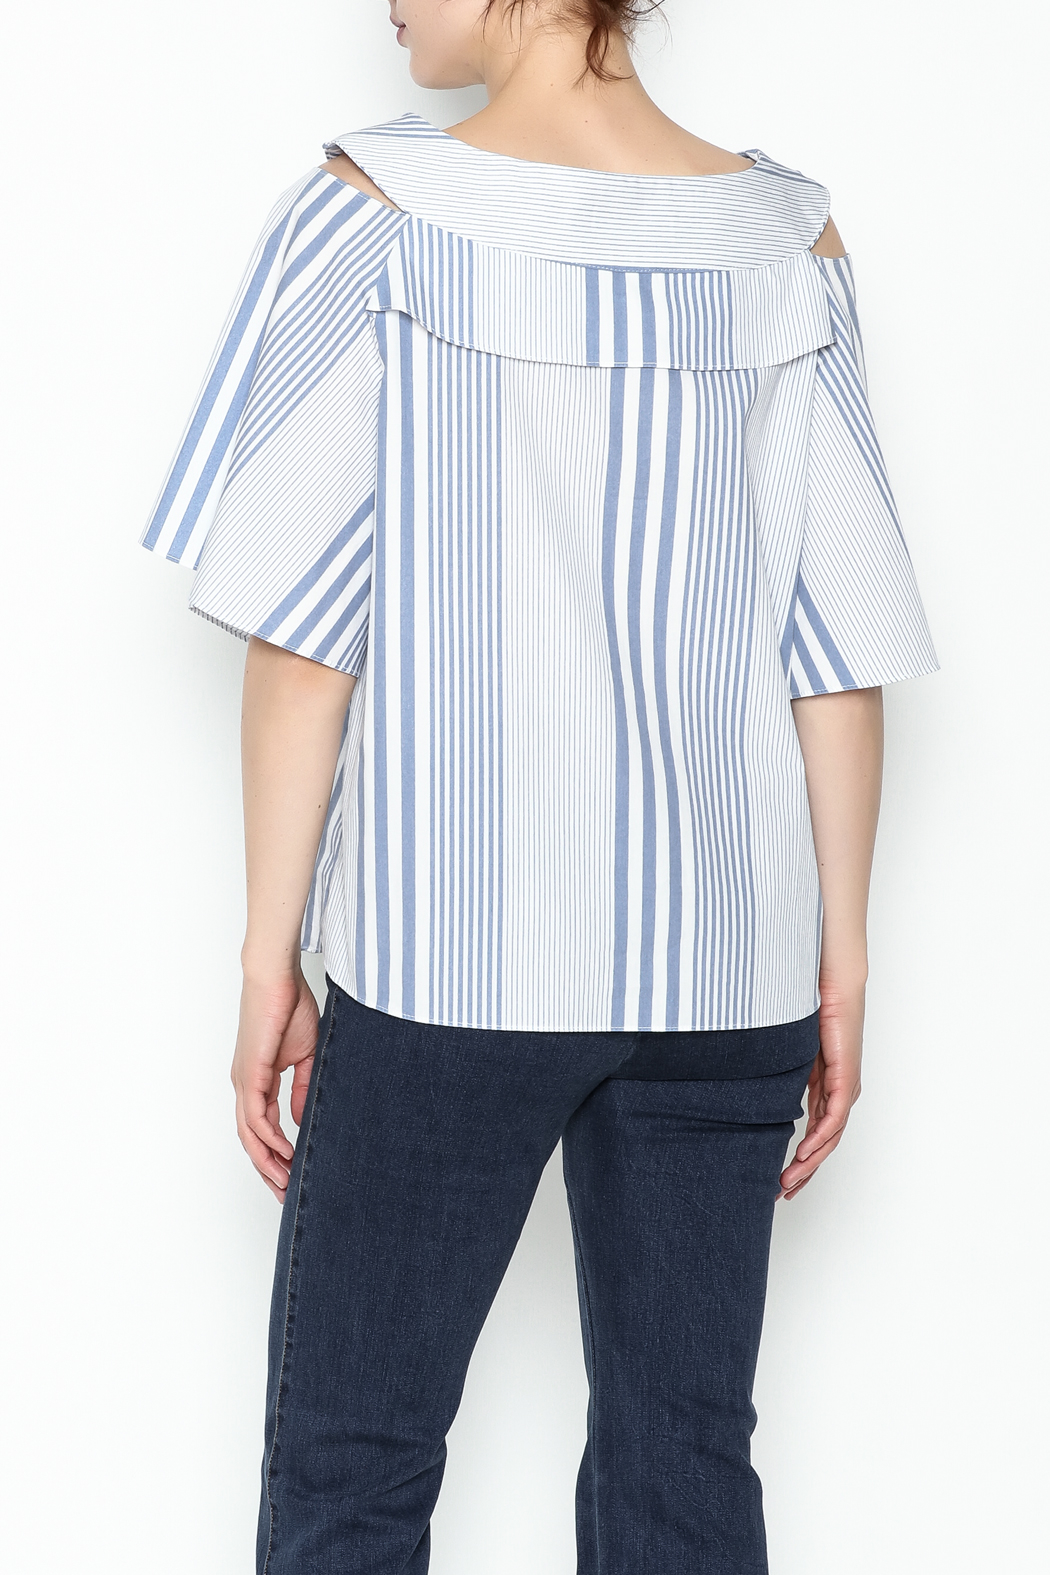 Pinkyotto Striped Ruffle Top - Back Cropped Image